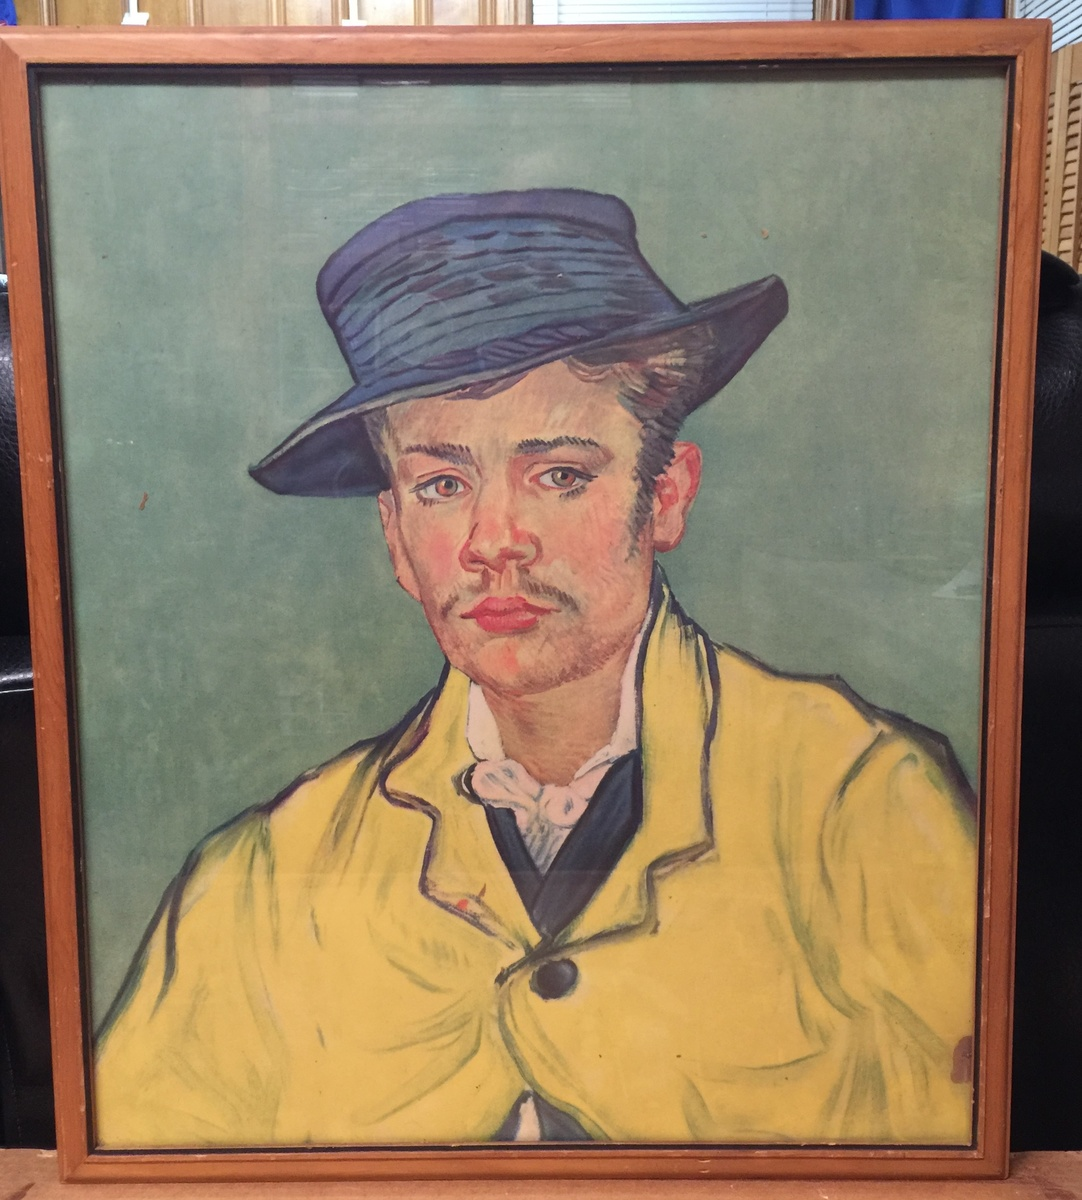 Painting Van Gogh Portrait Armand Roulin Framed Picture Art Print 9x7 Inch